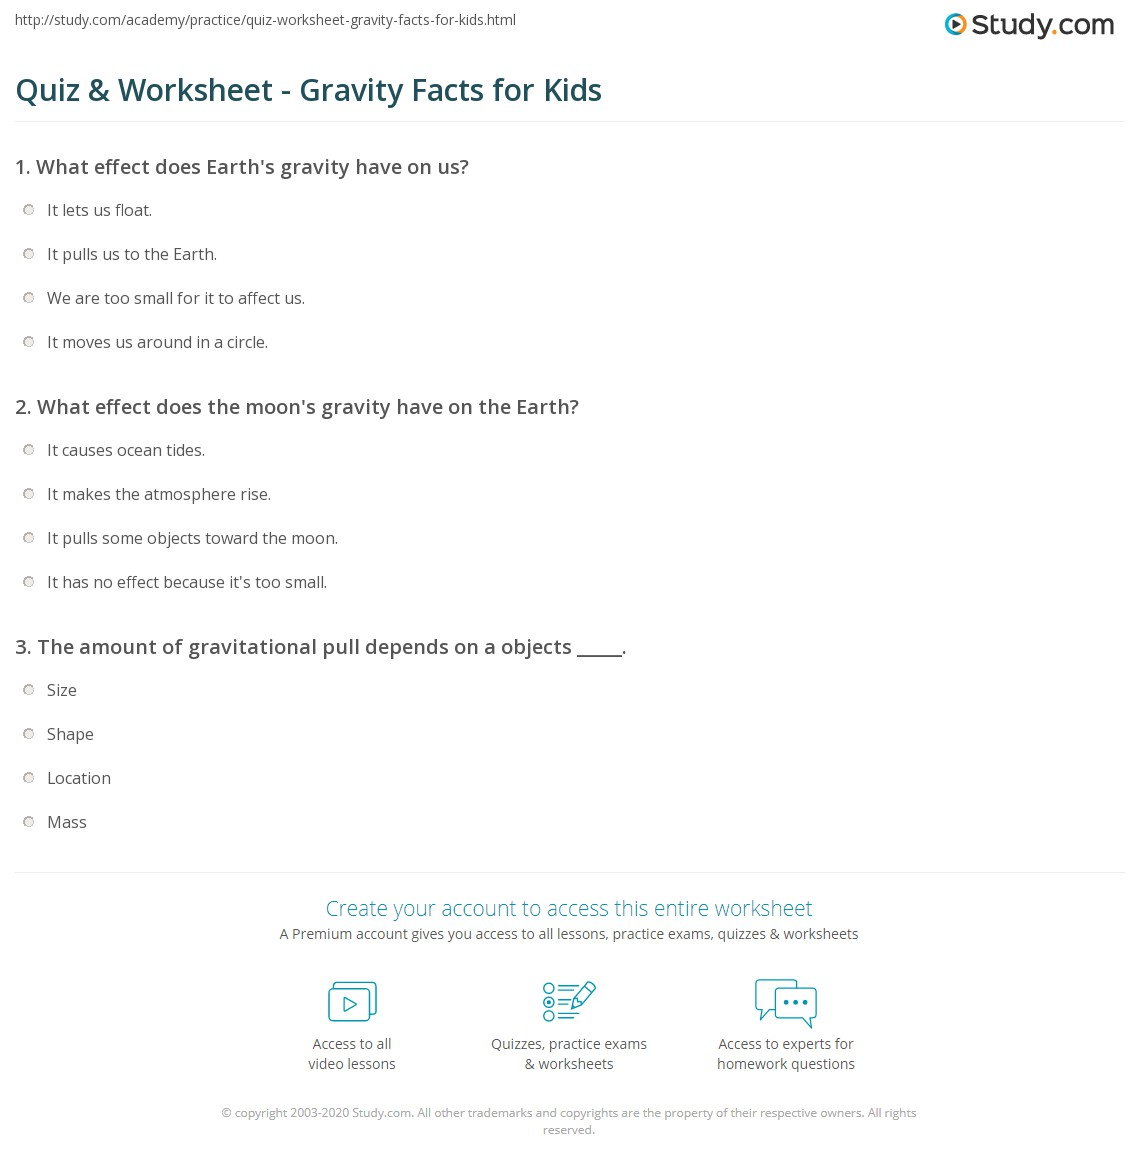 quiz & worksheet - gravity facts for kids | study